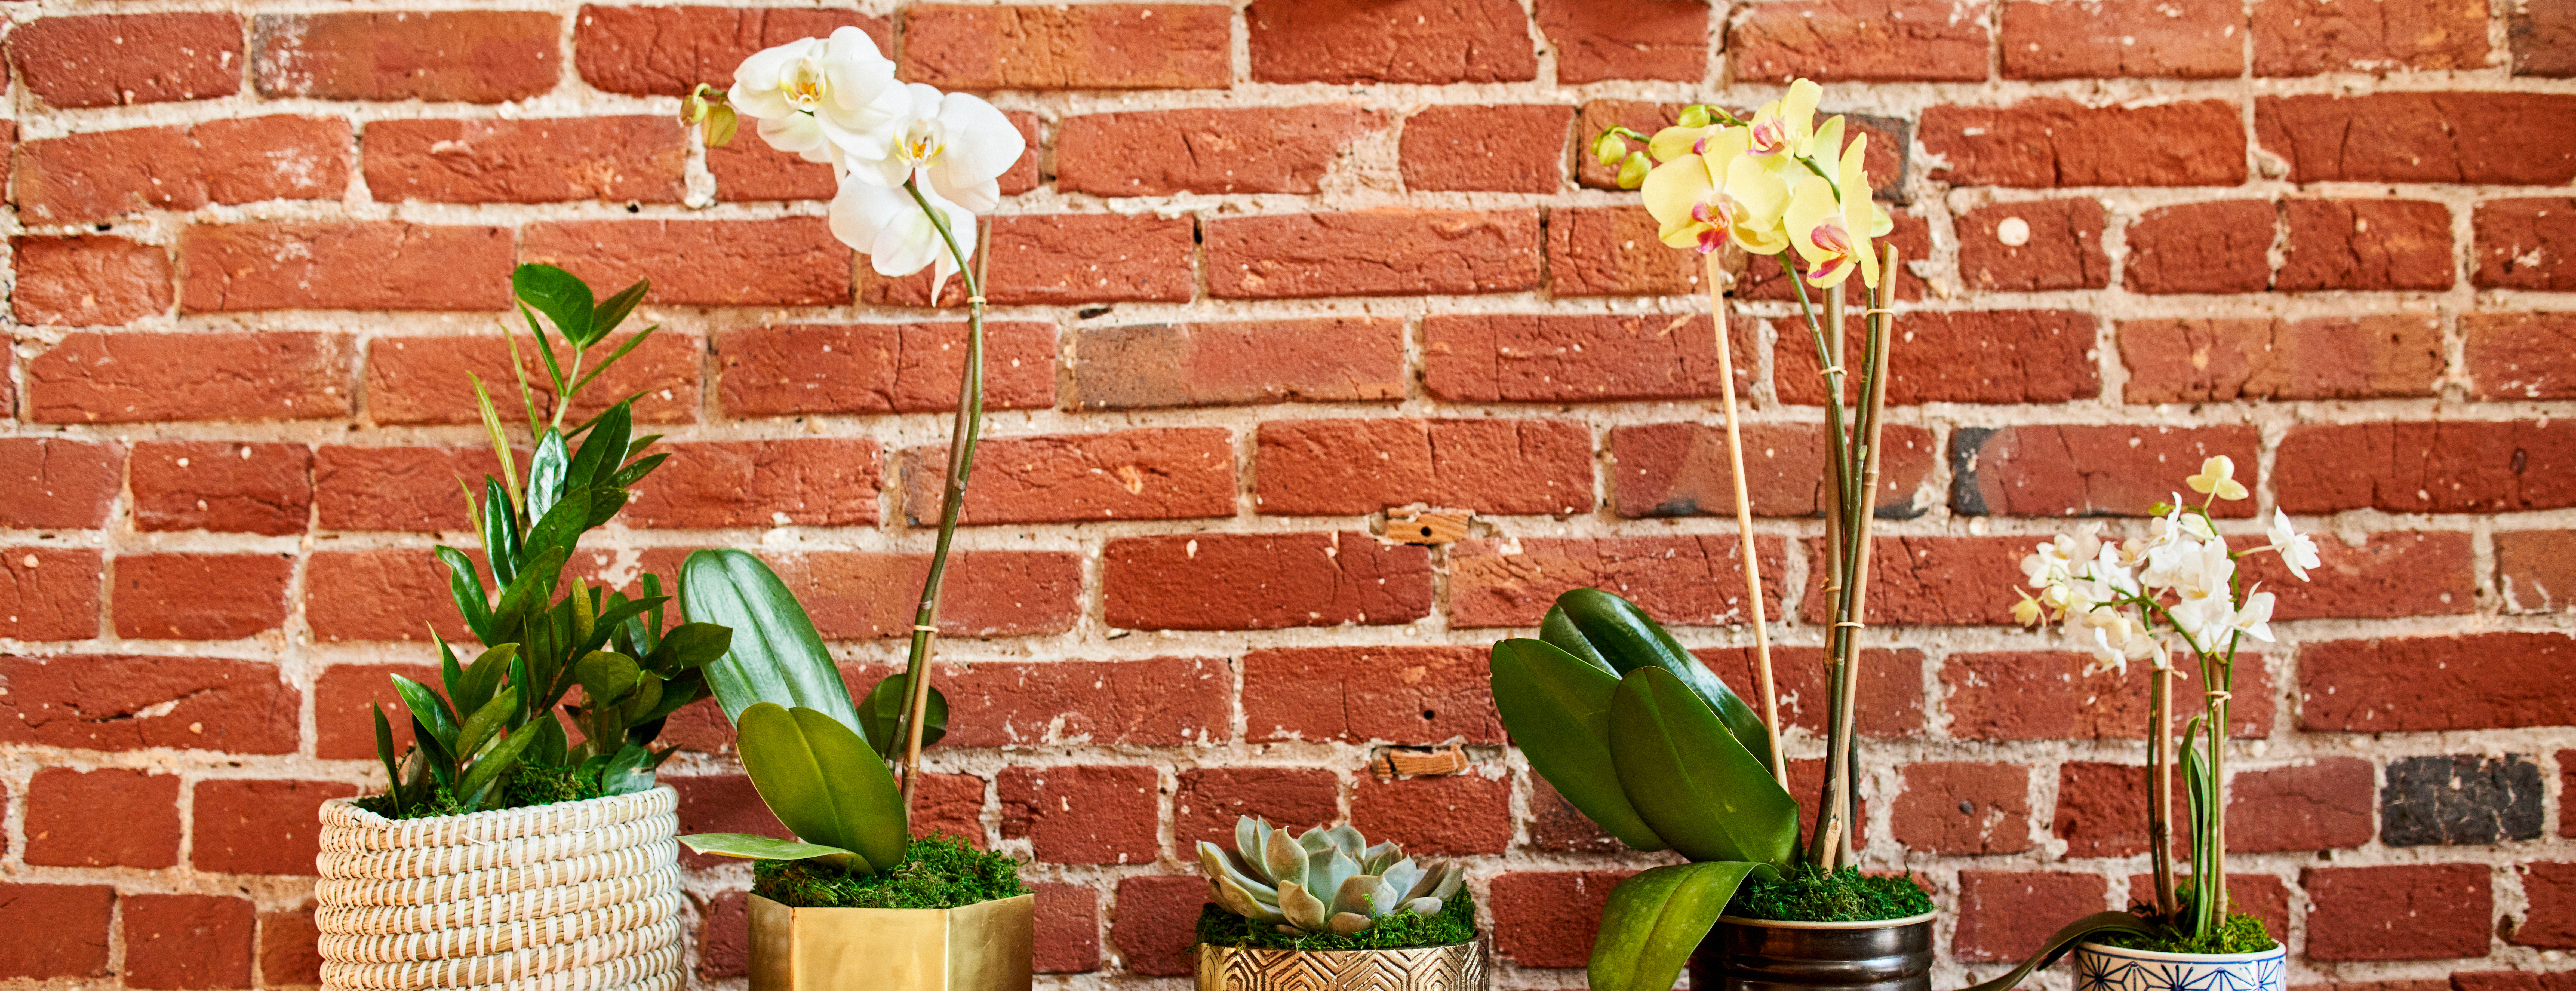 Orchid flowers and plants on table against brick wall.